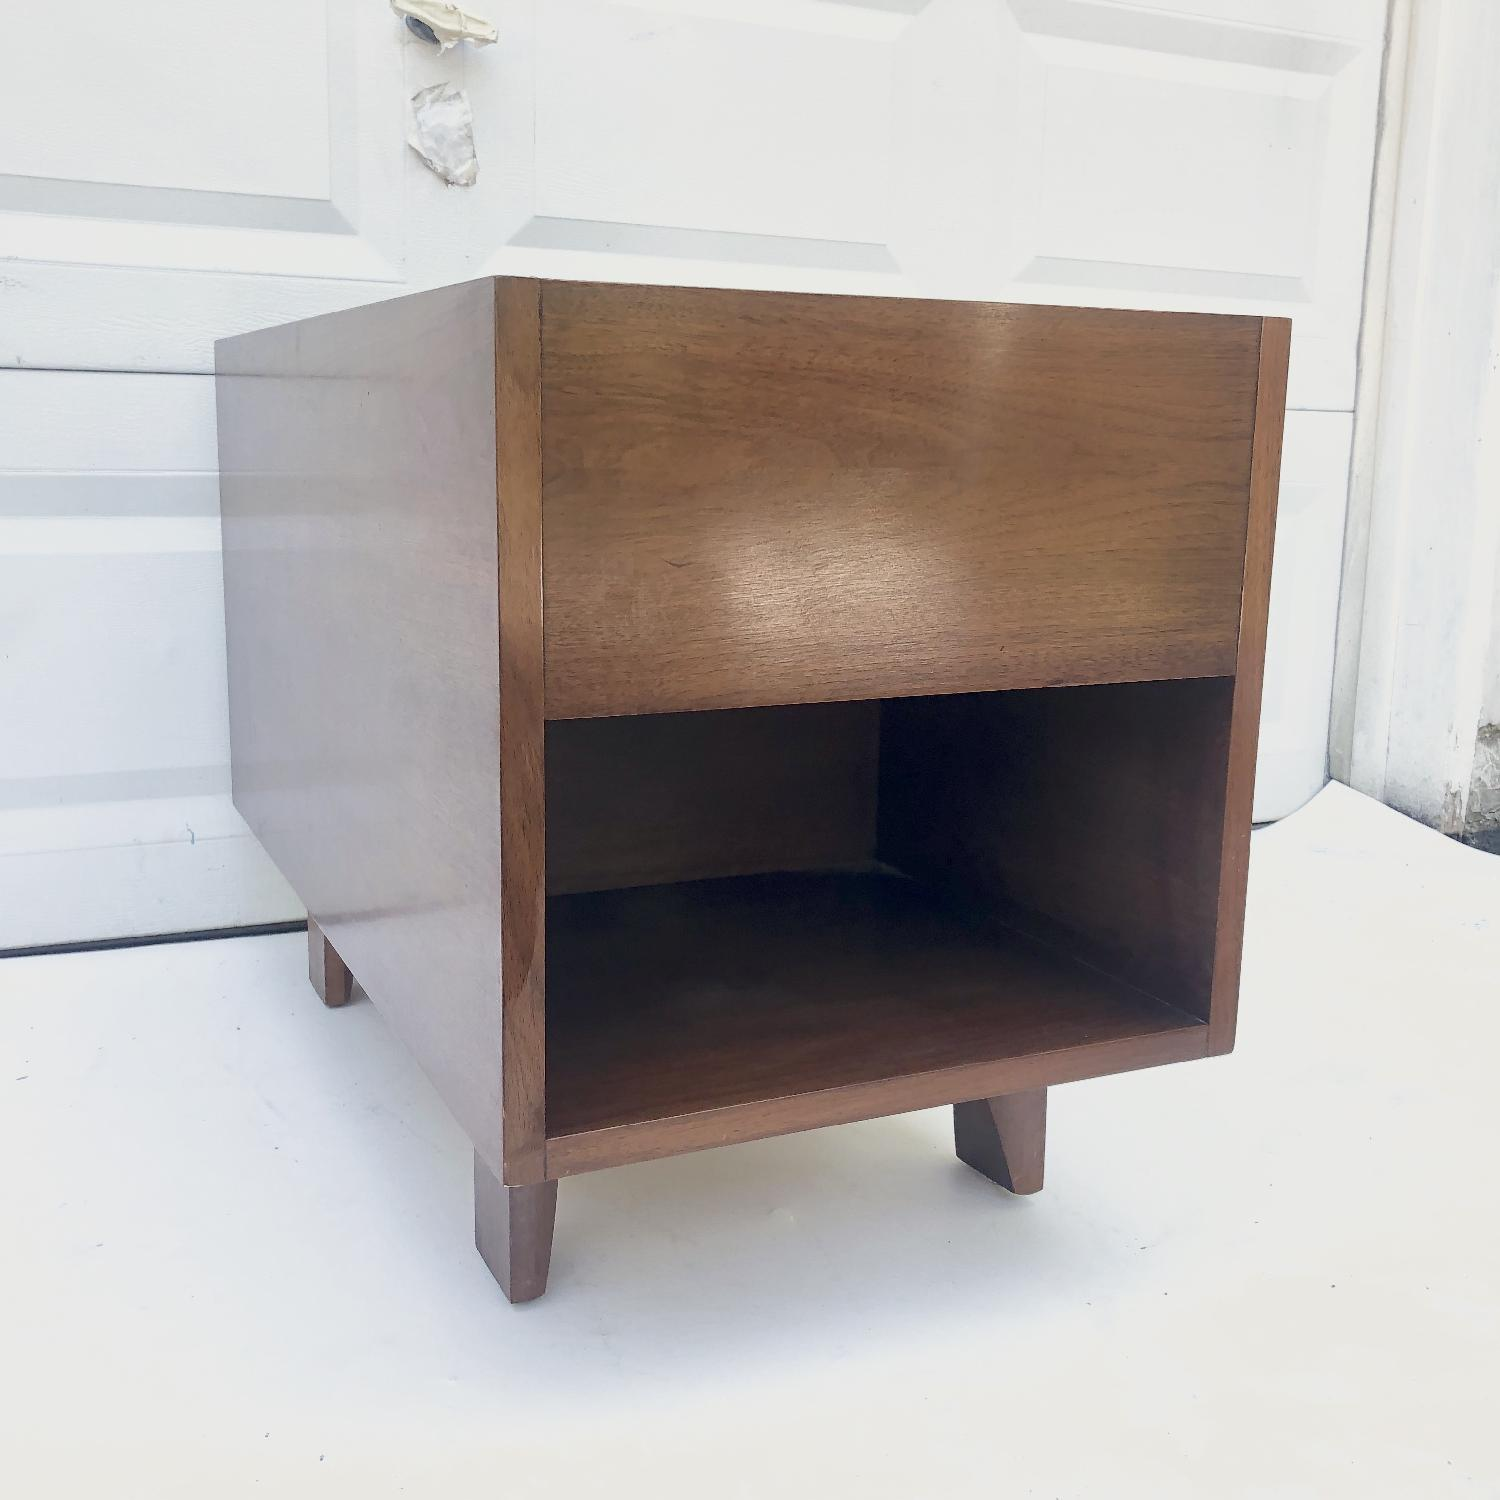 Herman Miller Side Tables by George Nelson - image-15